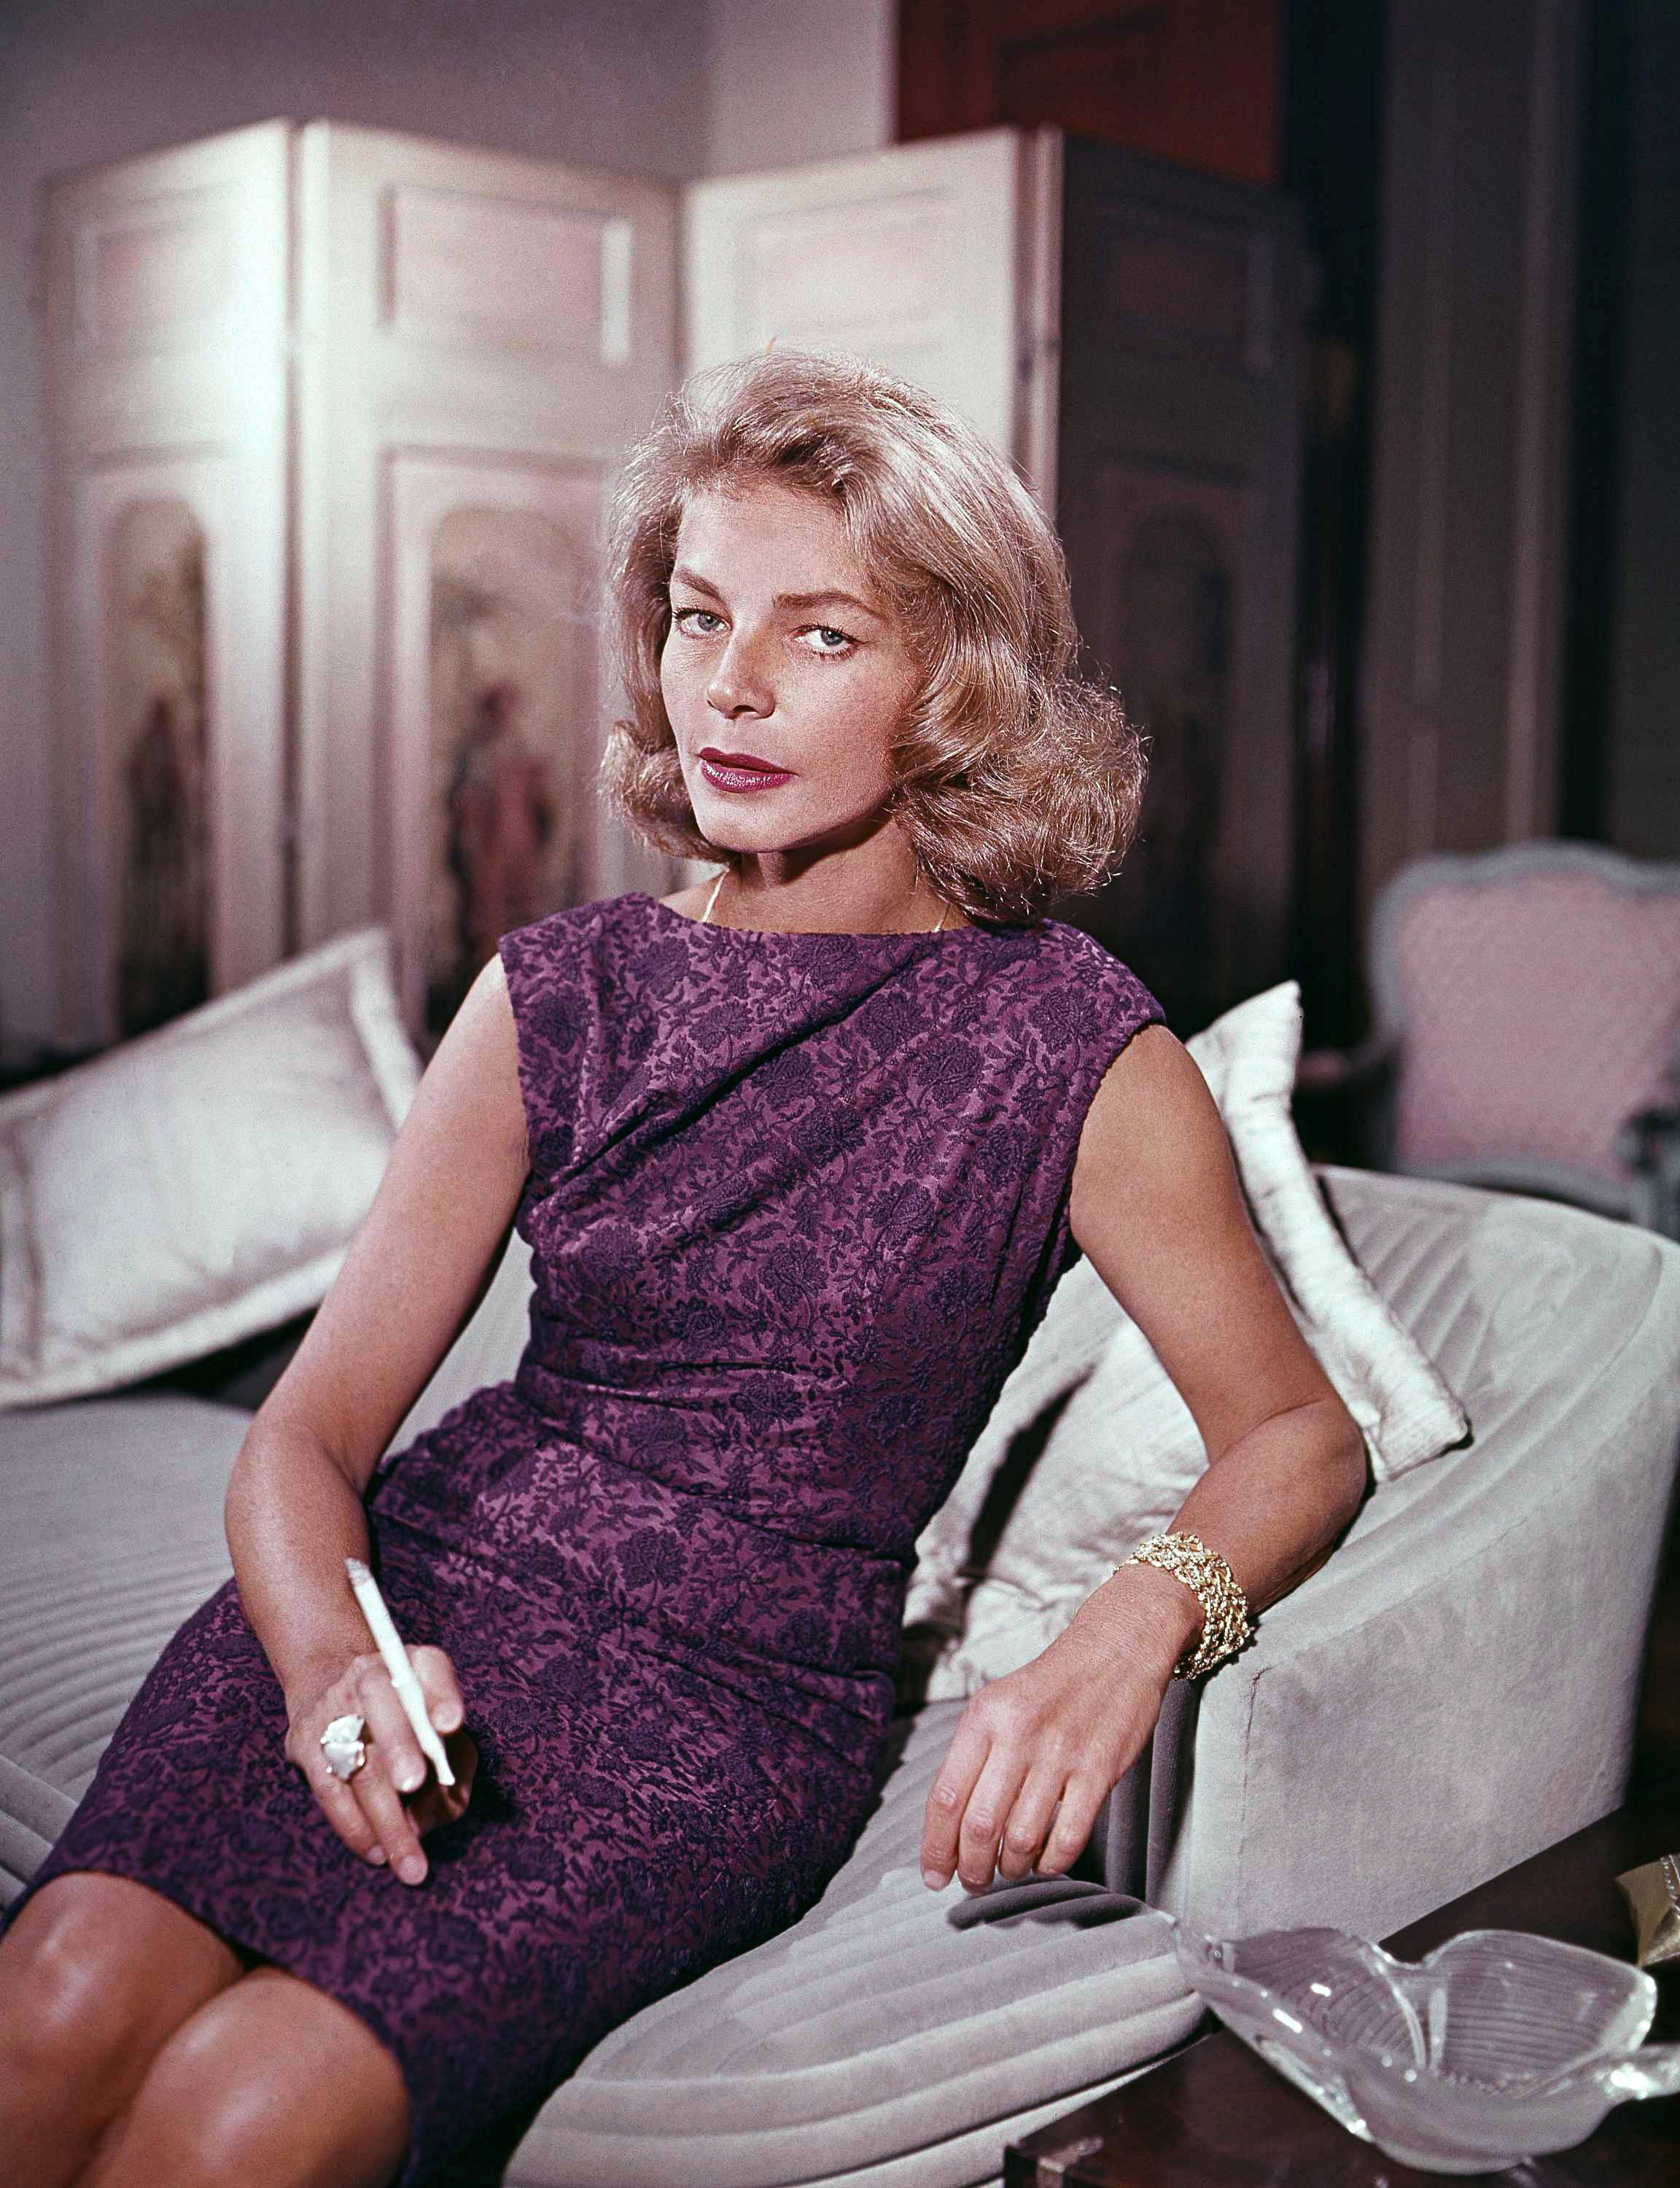 Lauren Bacall, shown here in 1965, the sultry-voiced actress and Humphrey Bogart's partner off and on the screen, died Tuesday in New York. She was 89.